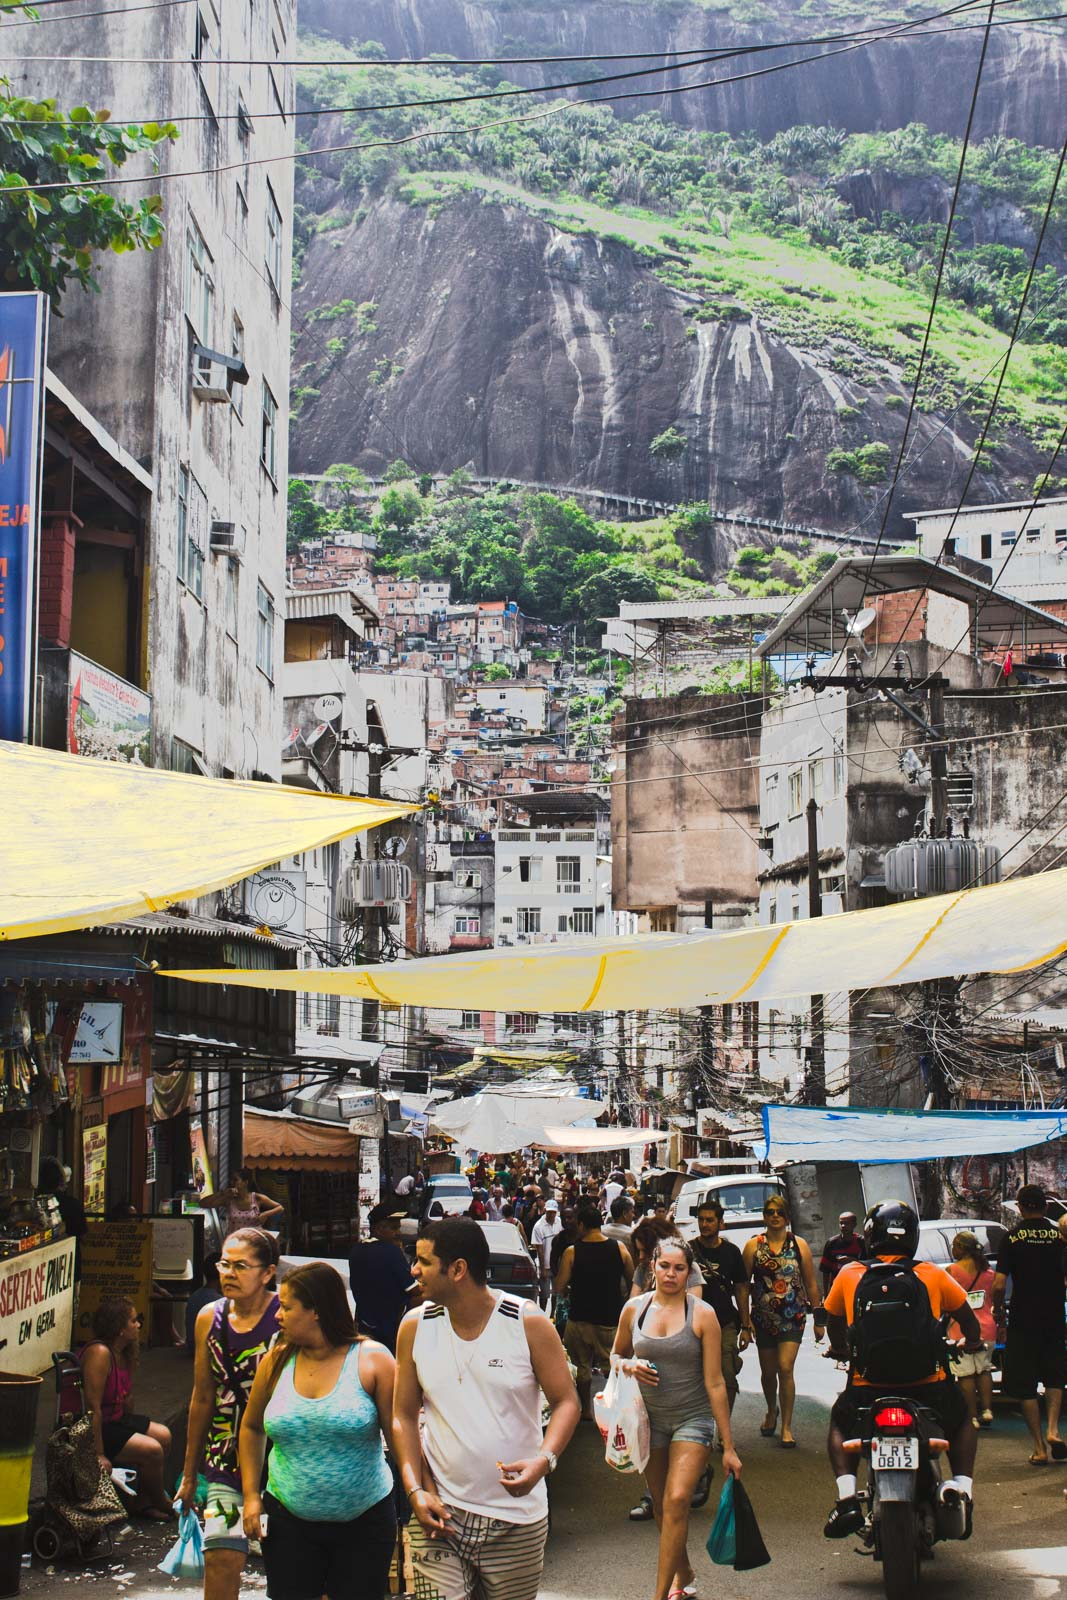 What's it like in Rio's favelas?